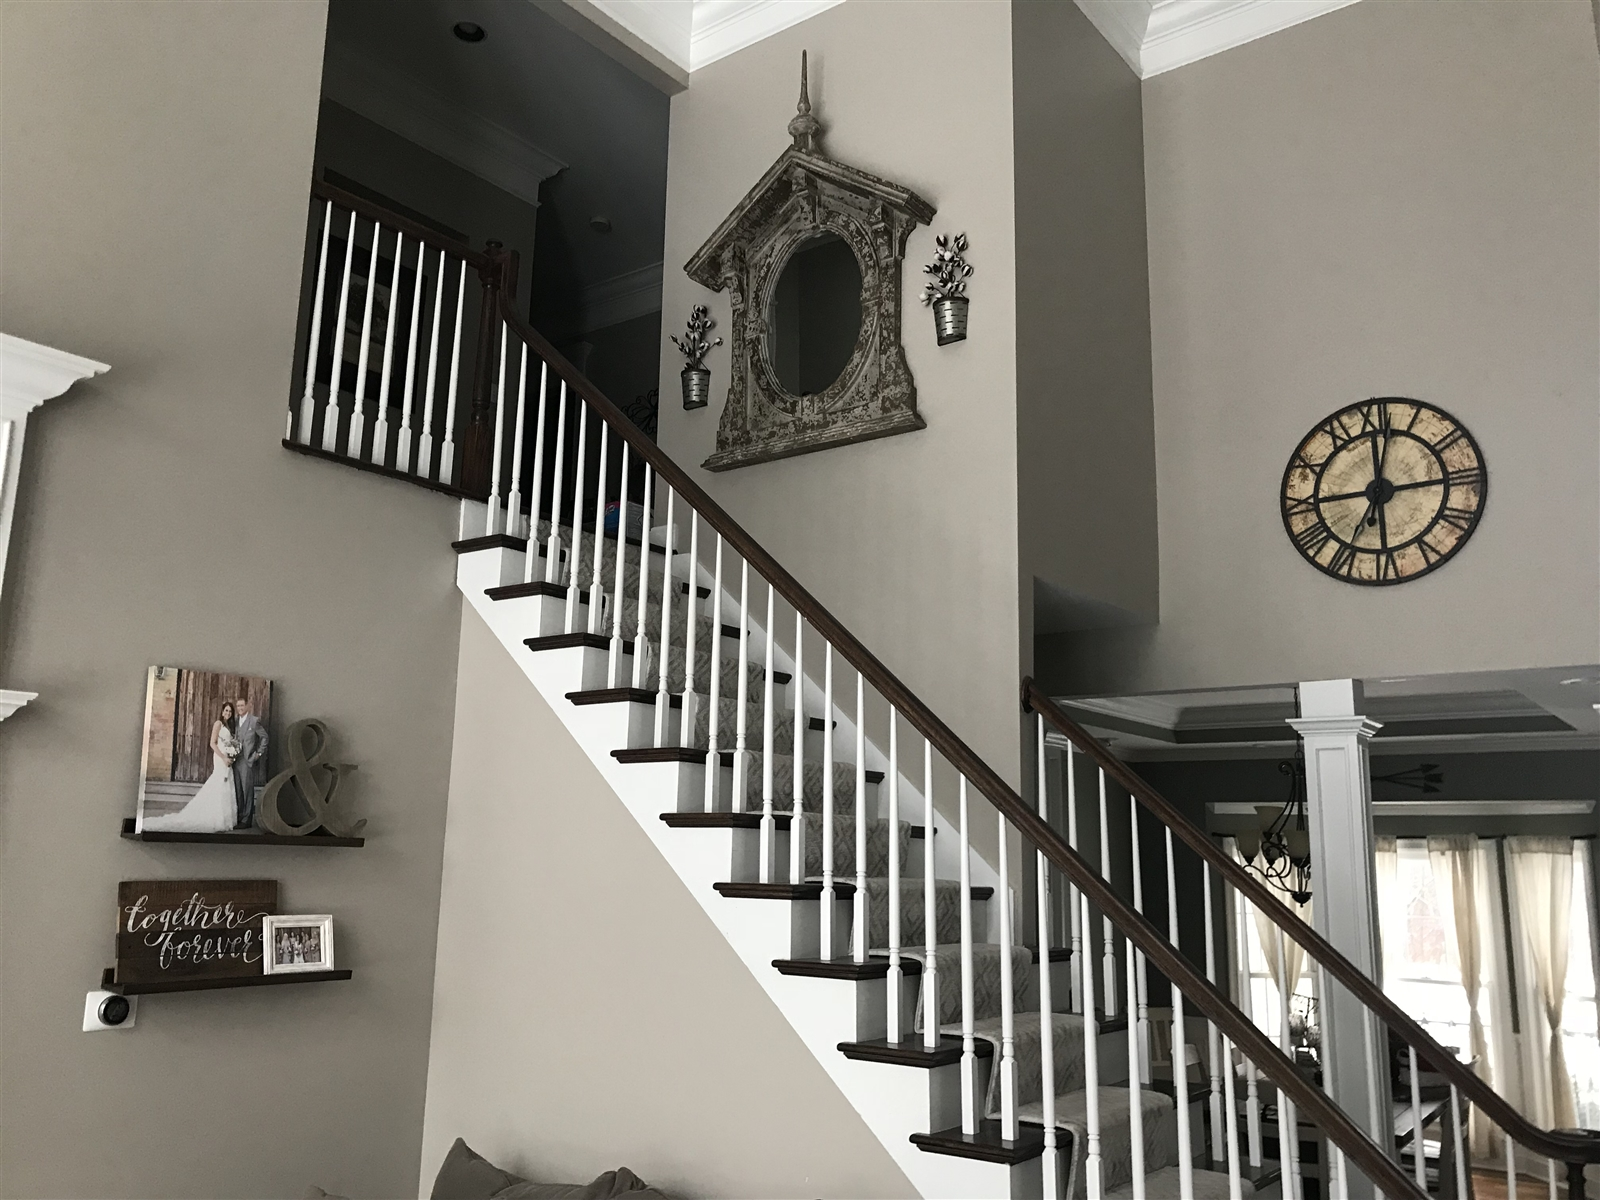 "u201cMy husband and I purchased our first home two years ago and have truly loved decorating it and making it our own,"" said Molly Dohm.  The birdhouse mirror on the staircase wall is from Tattered Tulip in Lockport."